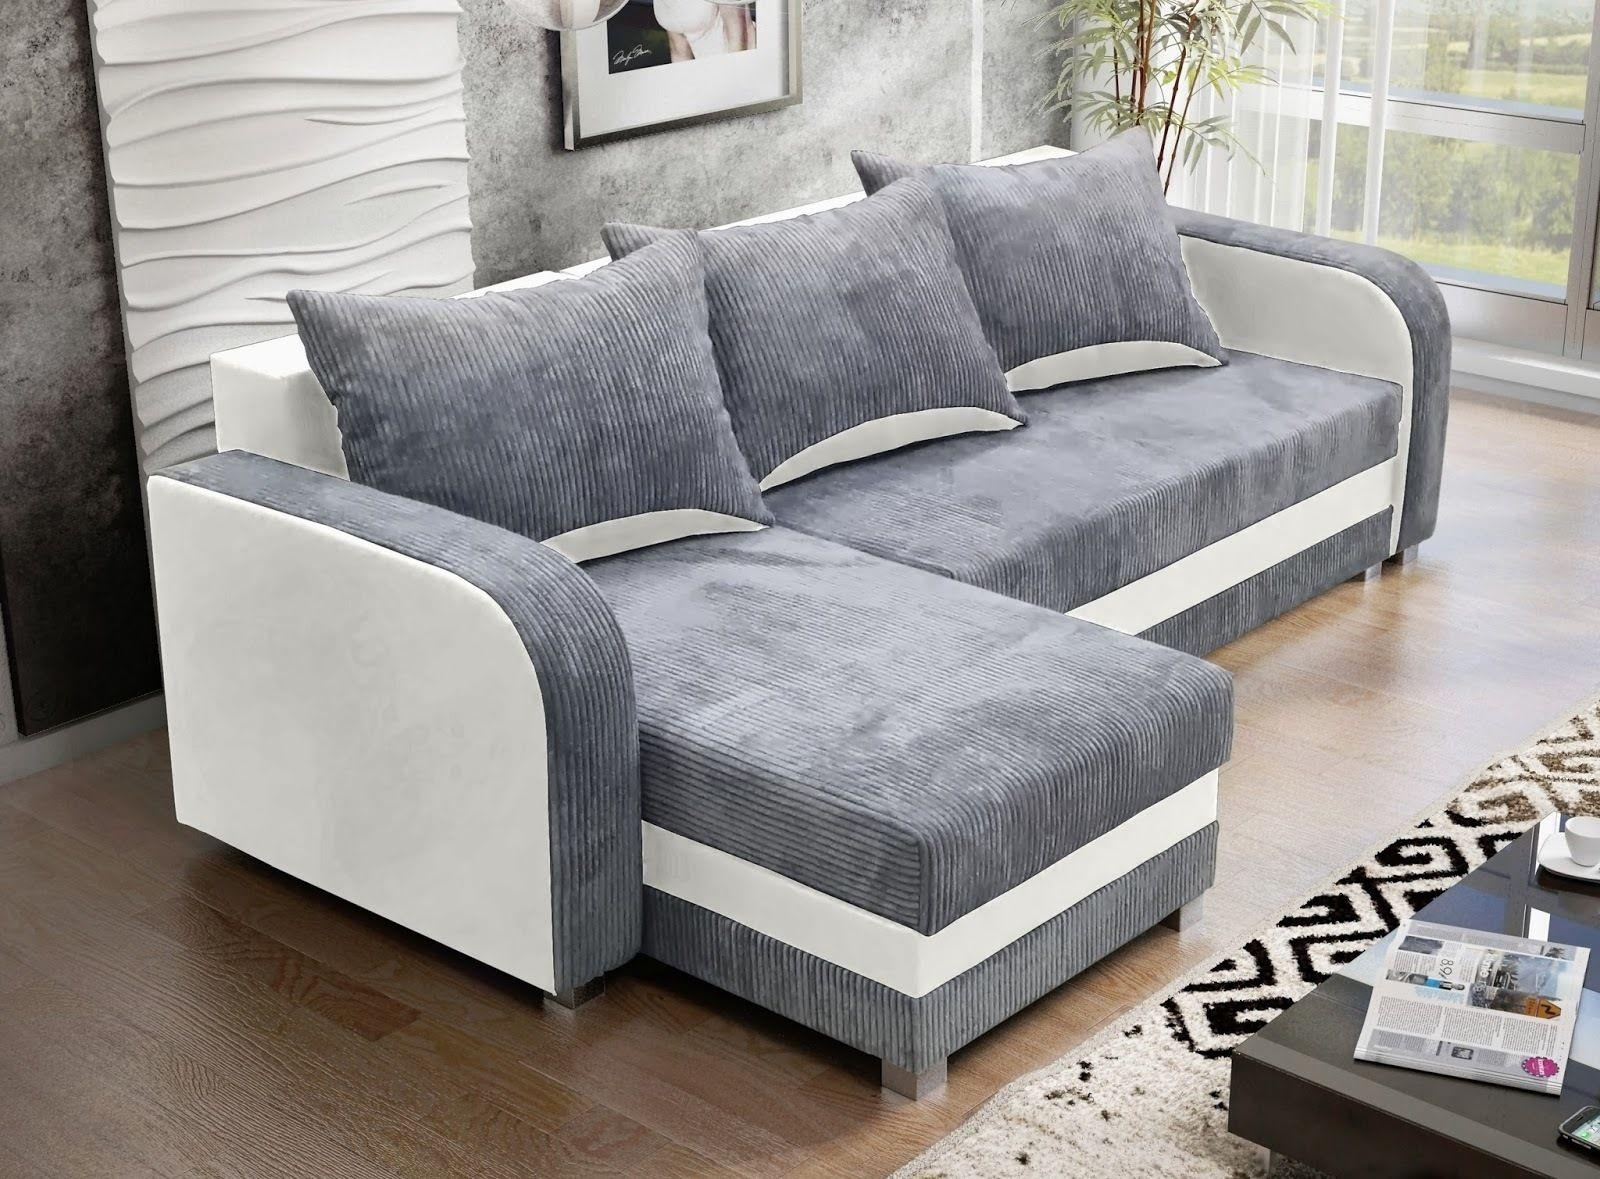 Sofa Bed Shop Intended For Fabric Corner Sofa Bed (Image 18 of 20)